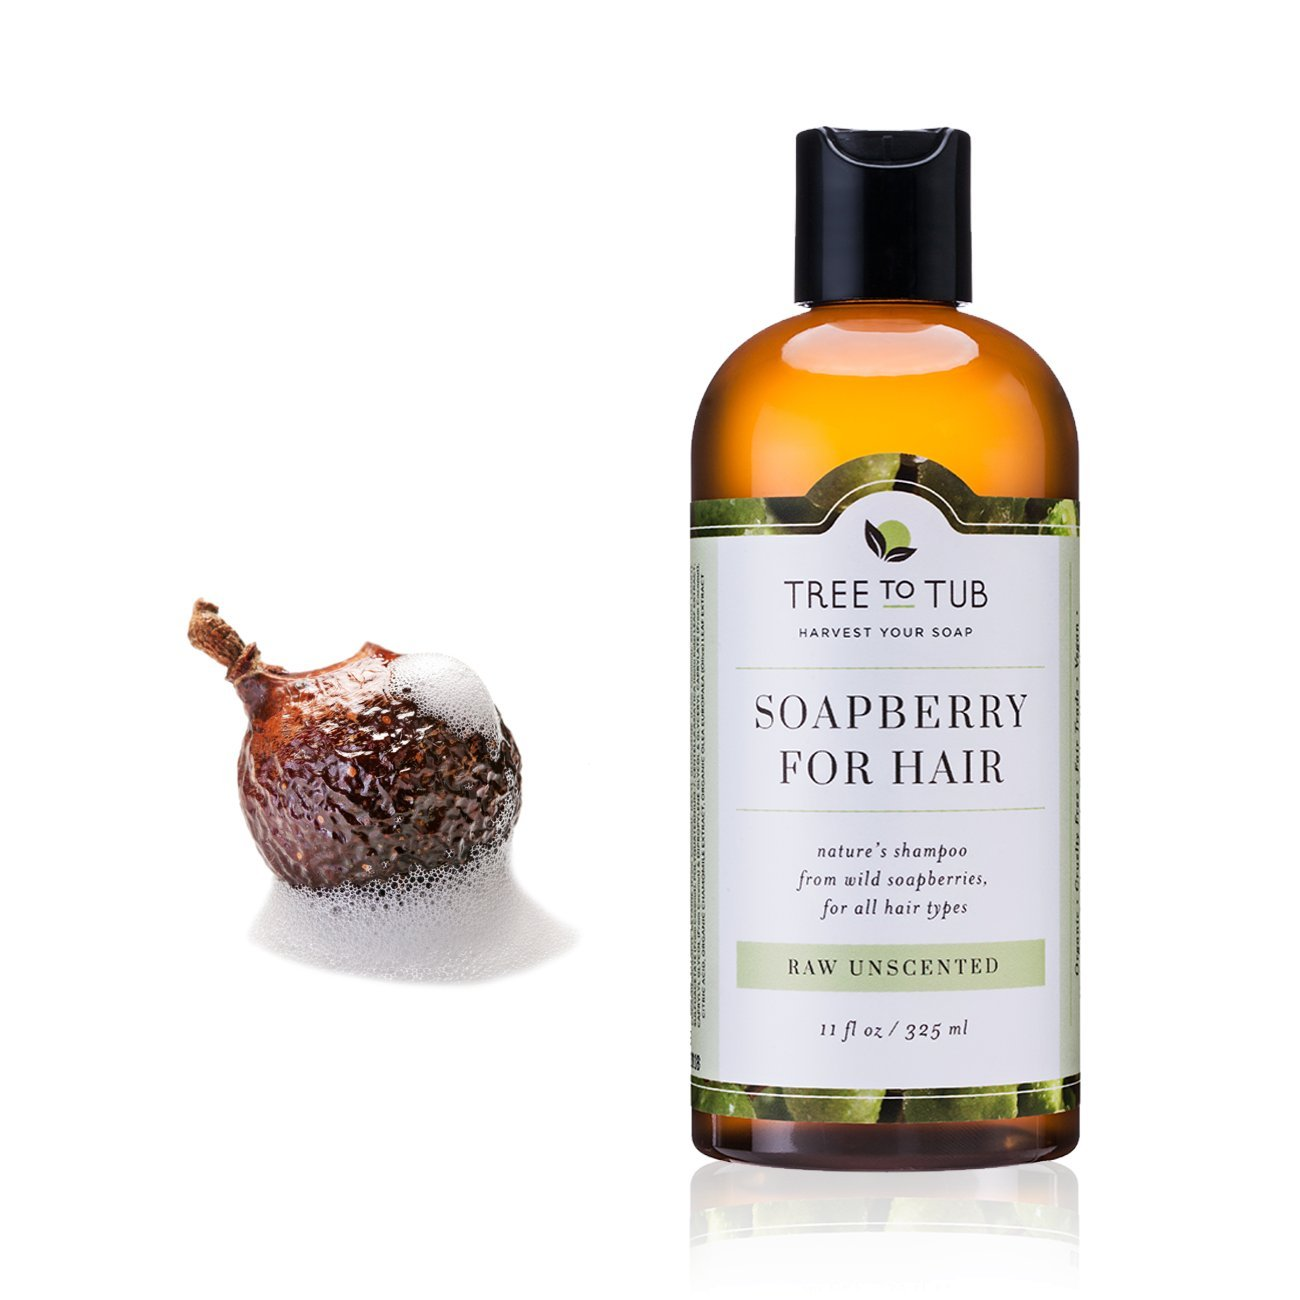 Organic Sensitive Scalp Shampoo —the Only Fragrance Free Shampoo that Naturally Soothes Sensitive Skin, Eczema & Psoriasis with Gentle Soapberry Lather, Unscented, 11oz—Tree to Tub